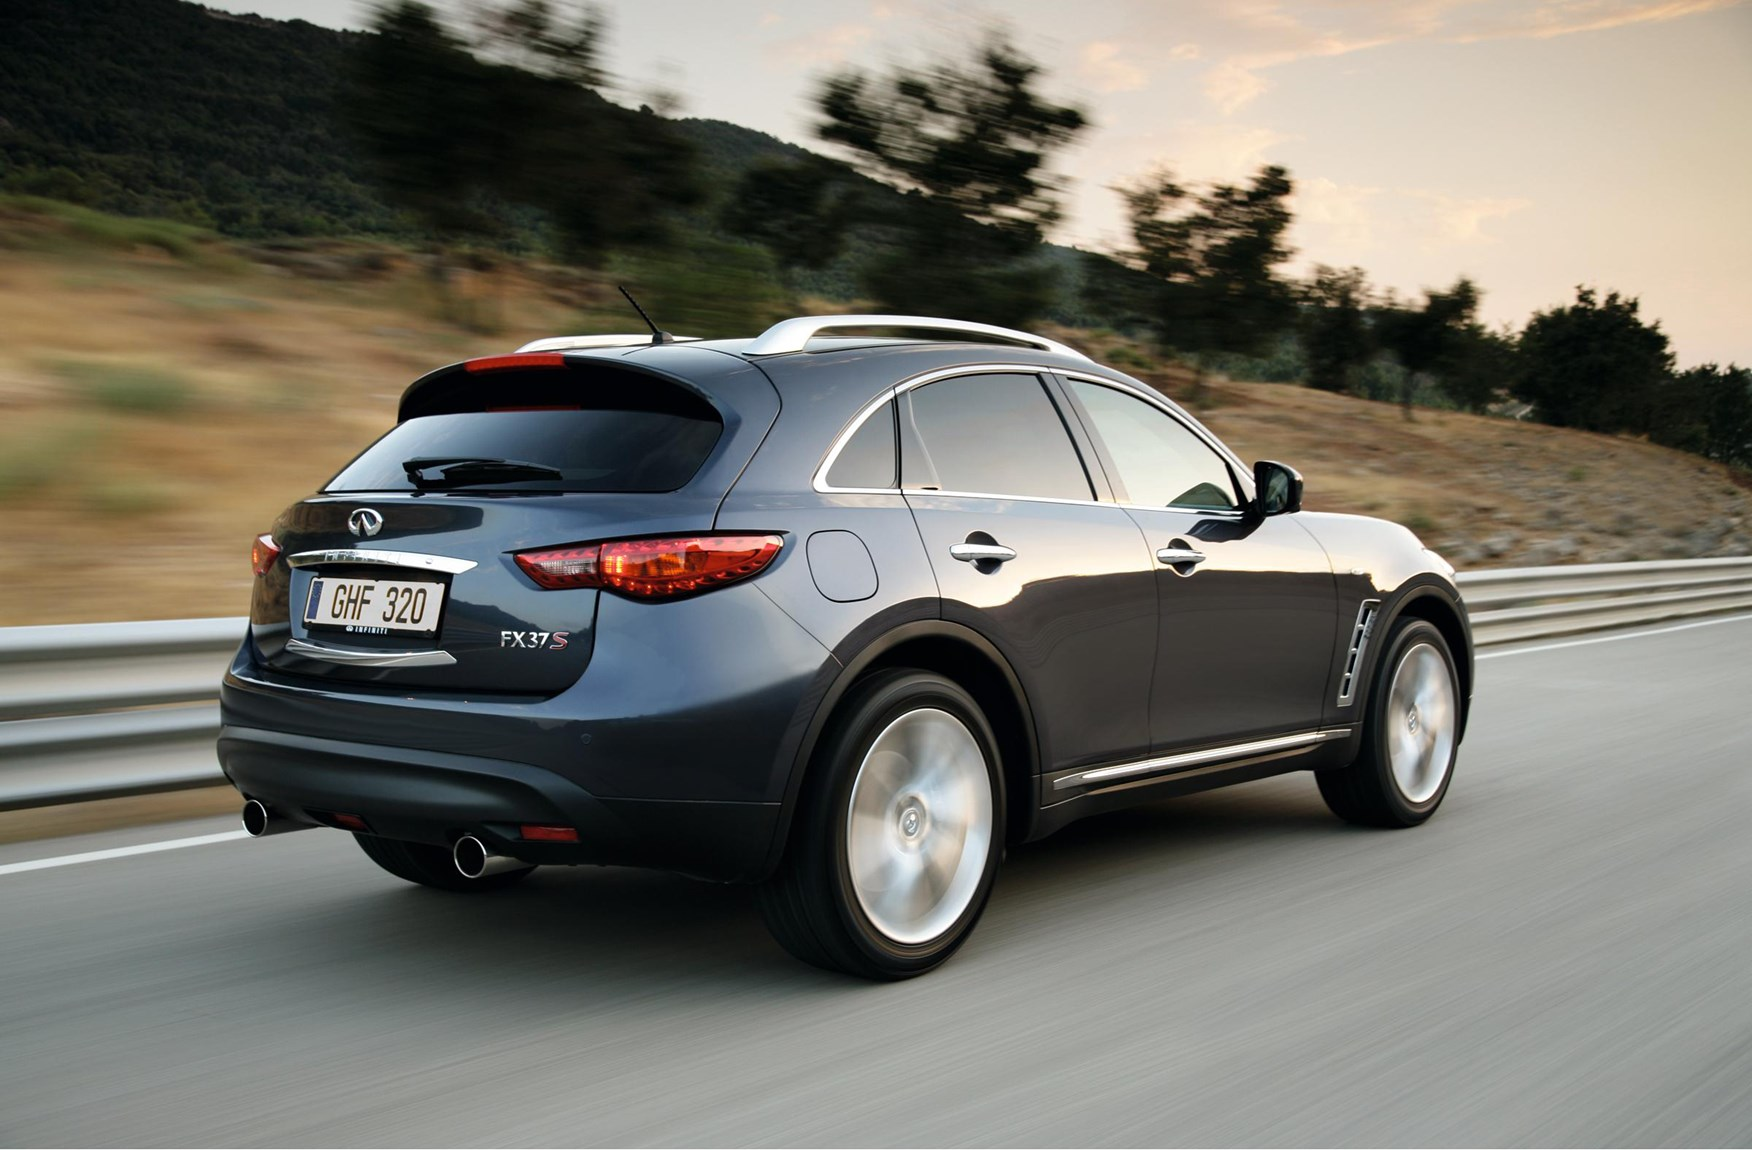 infiniti images car and infinity wallpapers hd pixel wallpaper wide